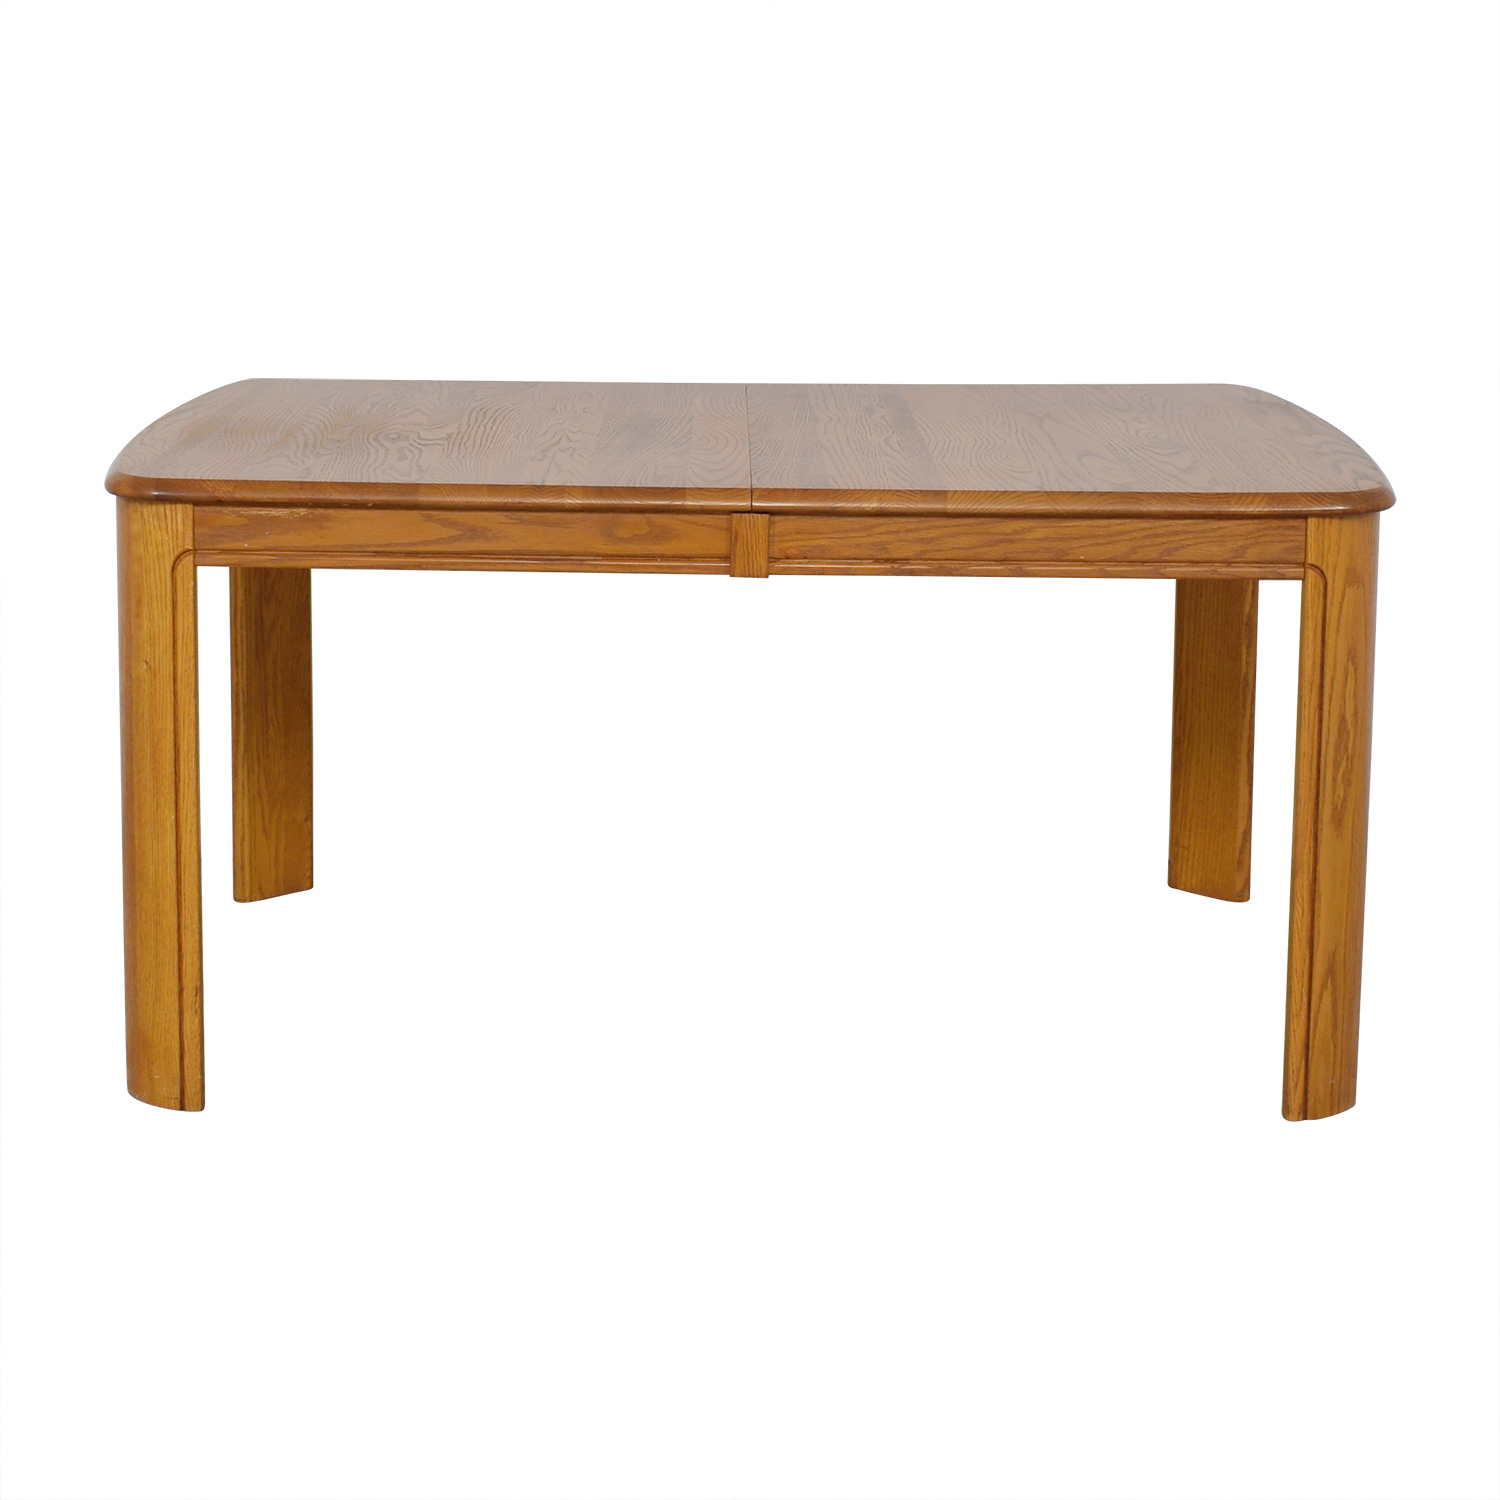 Keller Keller Classic Style Dining Table discount